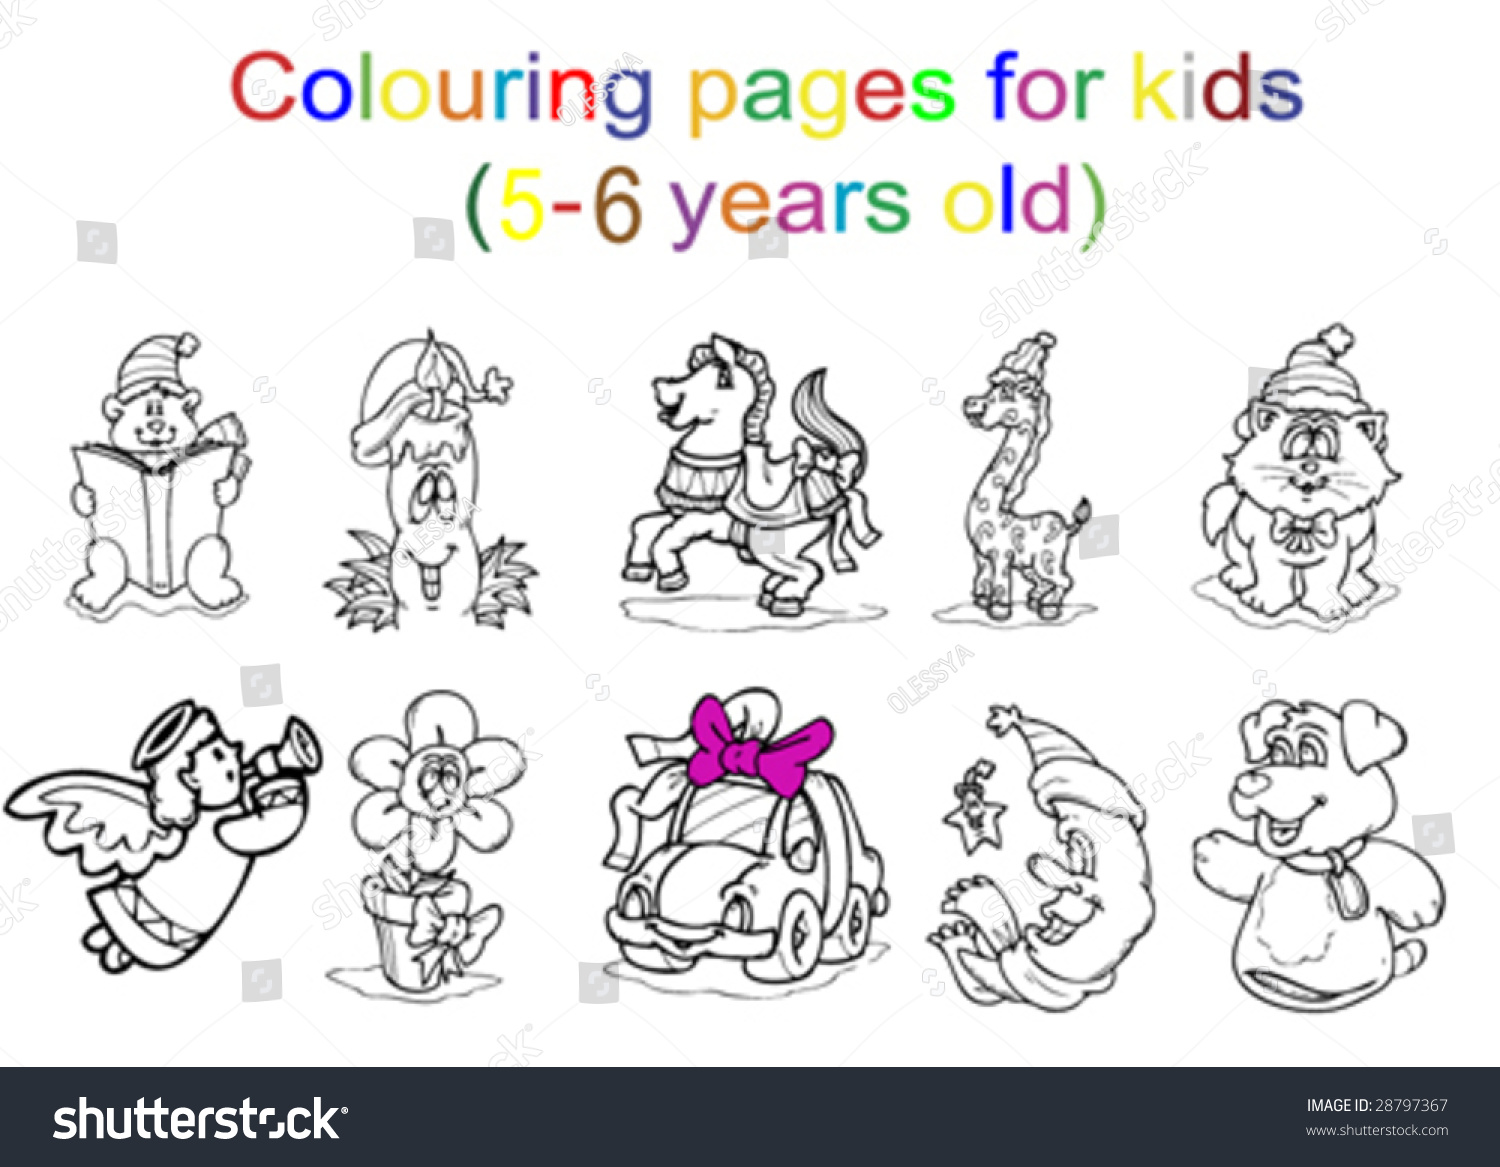 Colouring pages for kids 5 6 years old stock vector Coloring book for 5 year olds